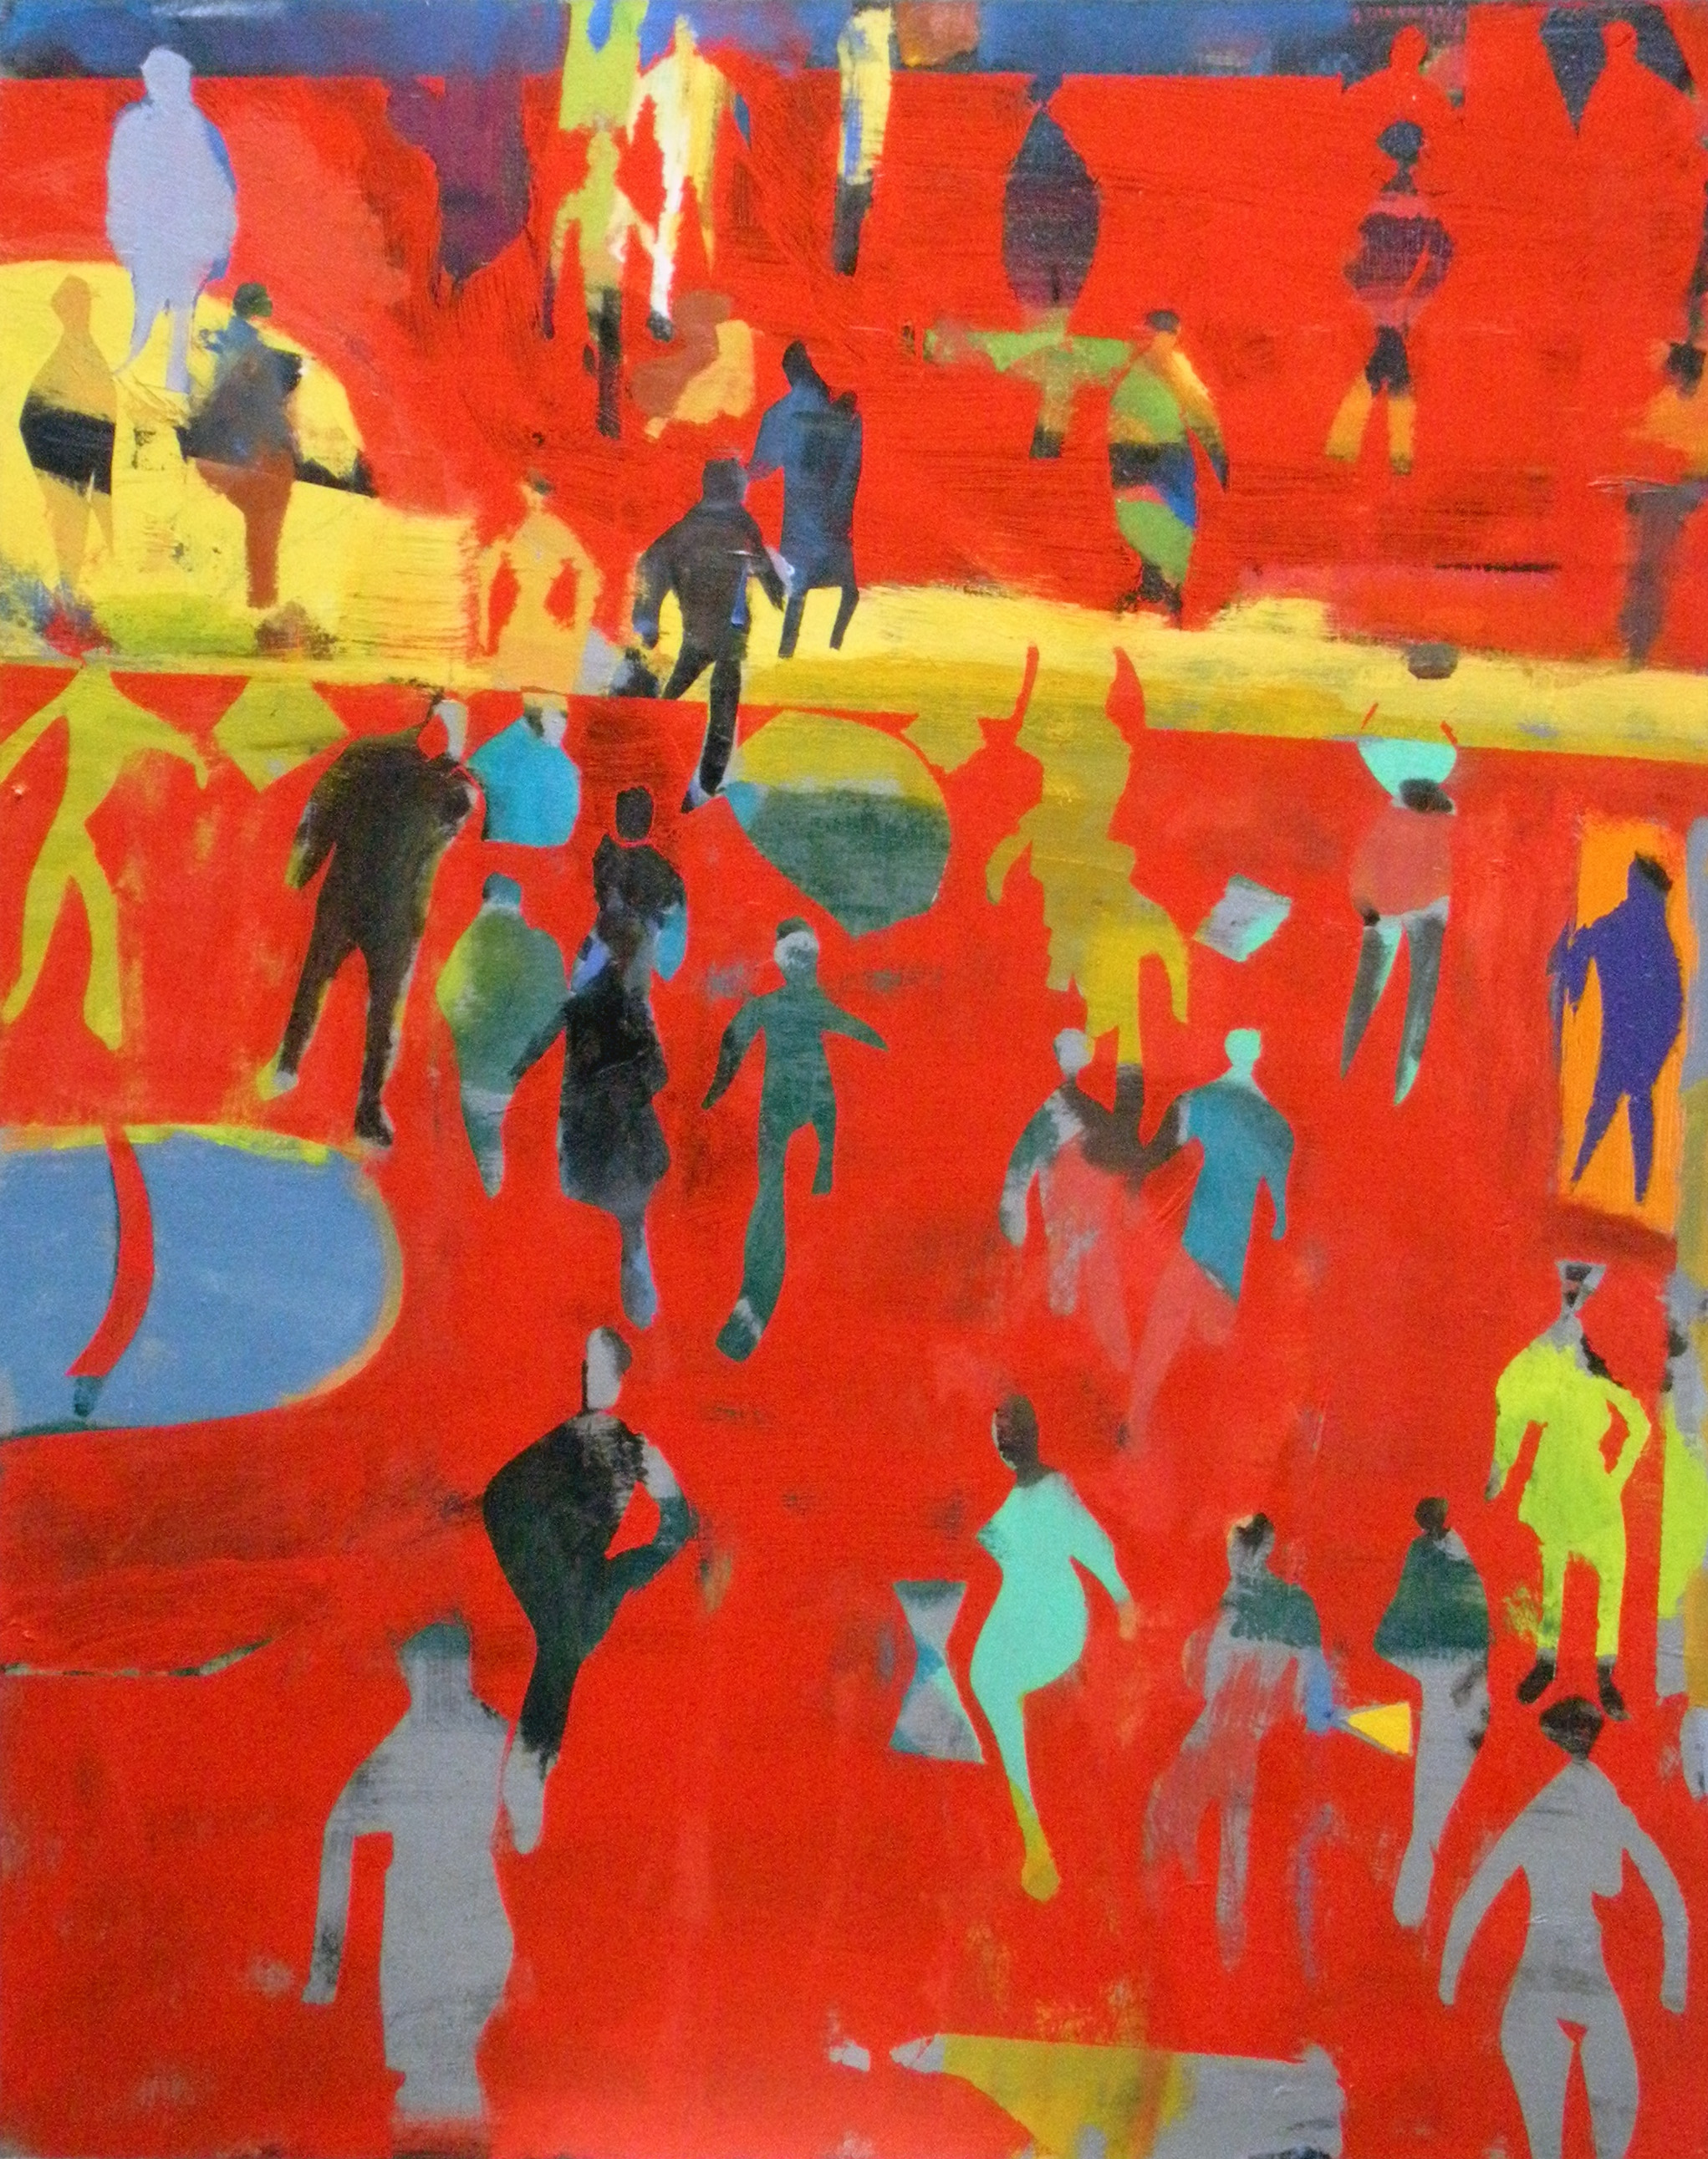 Vertical Crowd on Red Ground,  2014 oil on linen, 50 x 40 inches